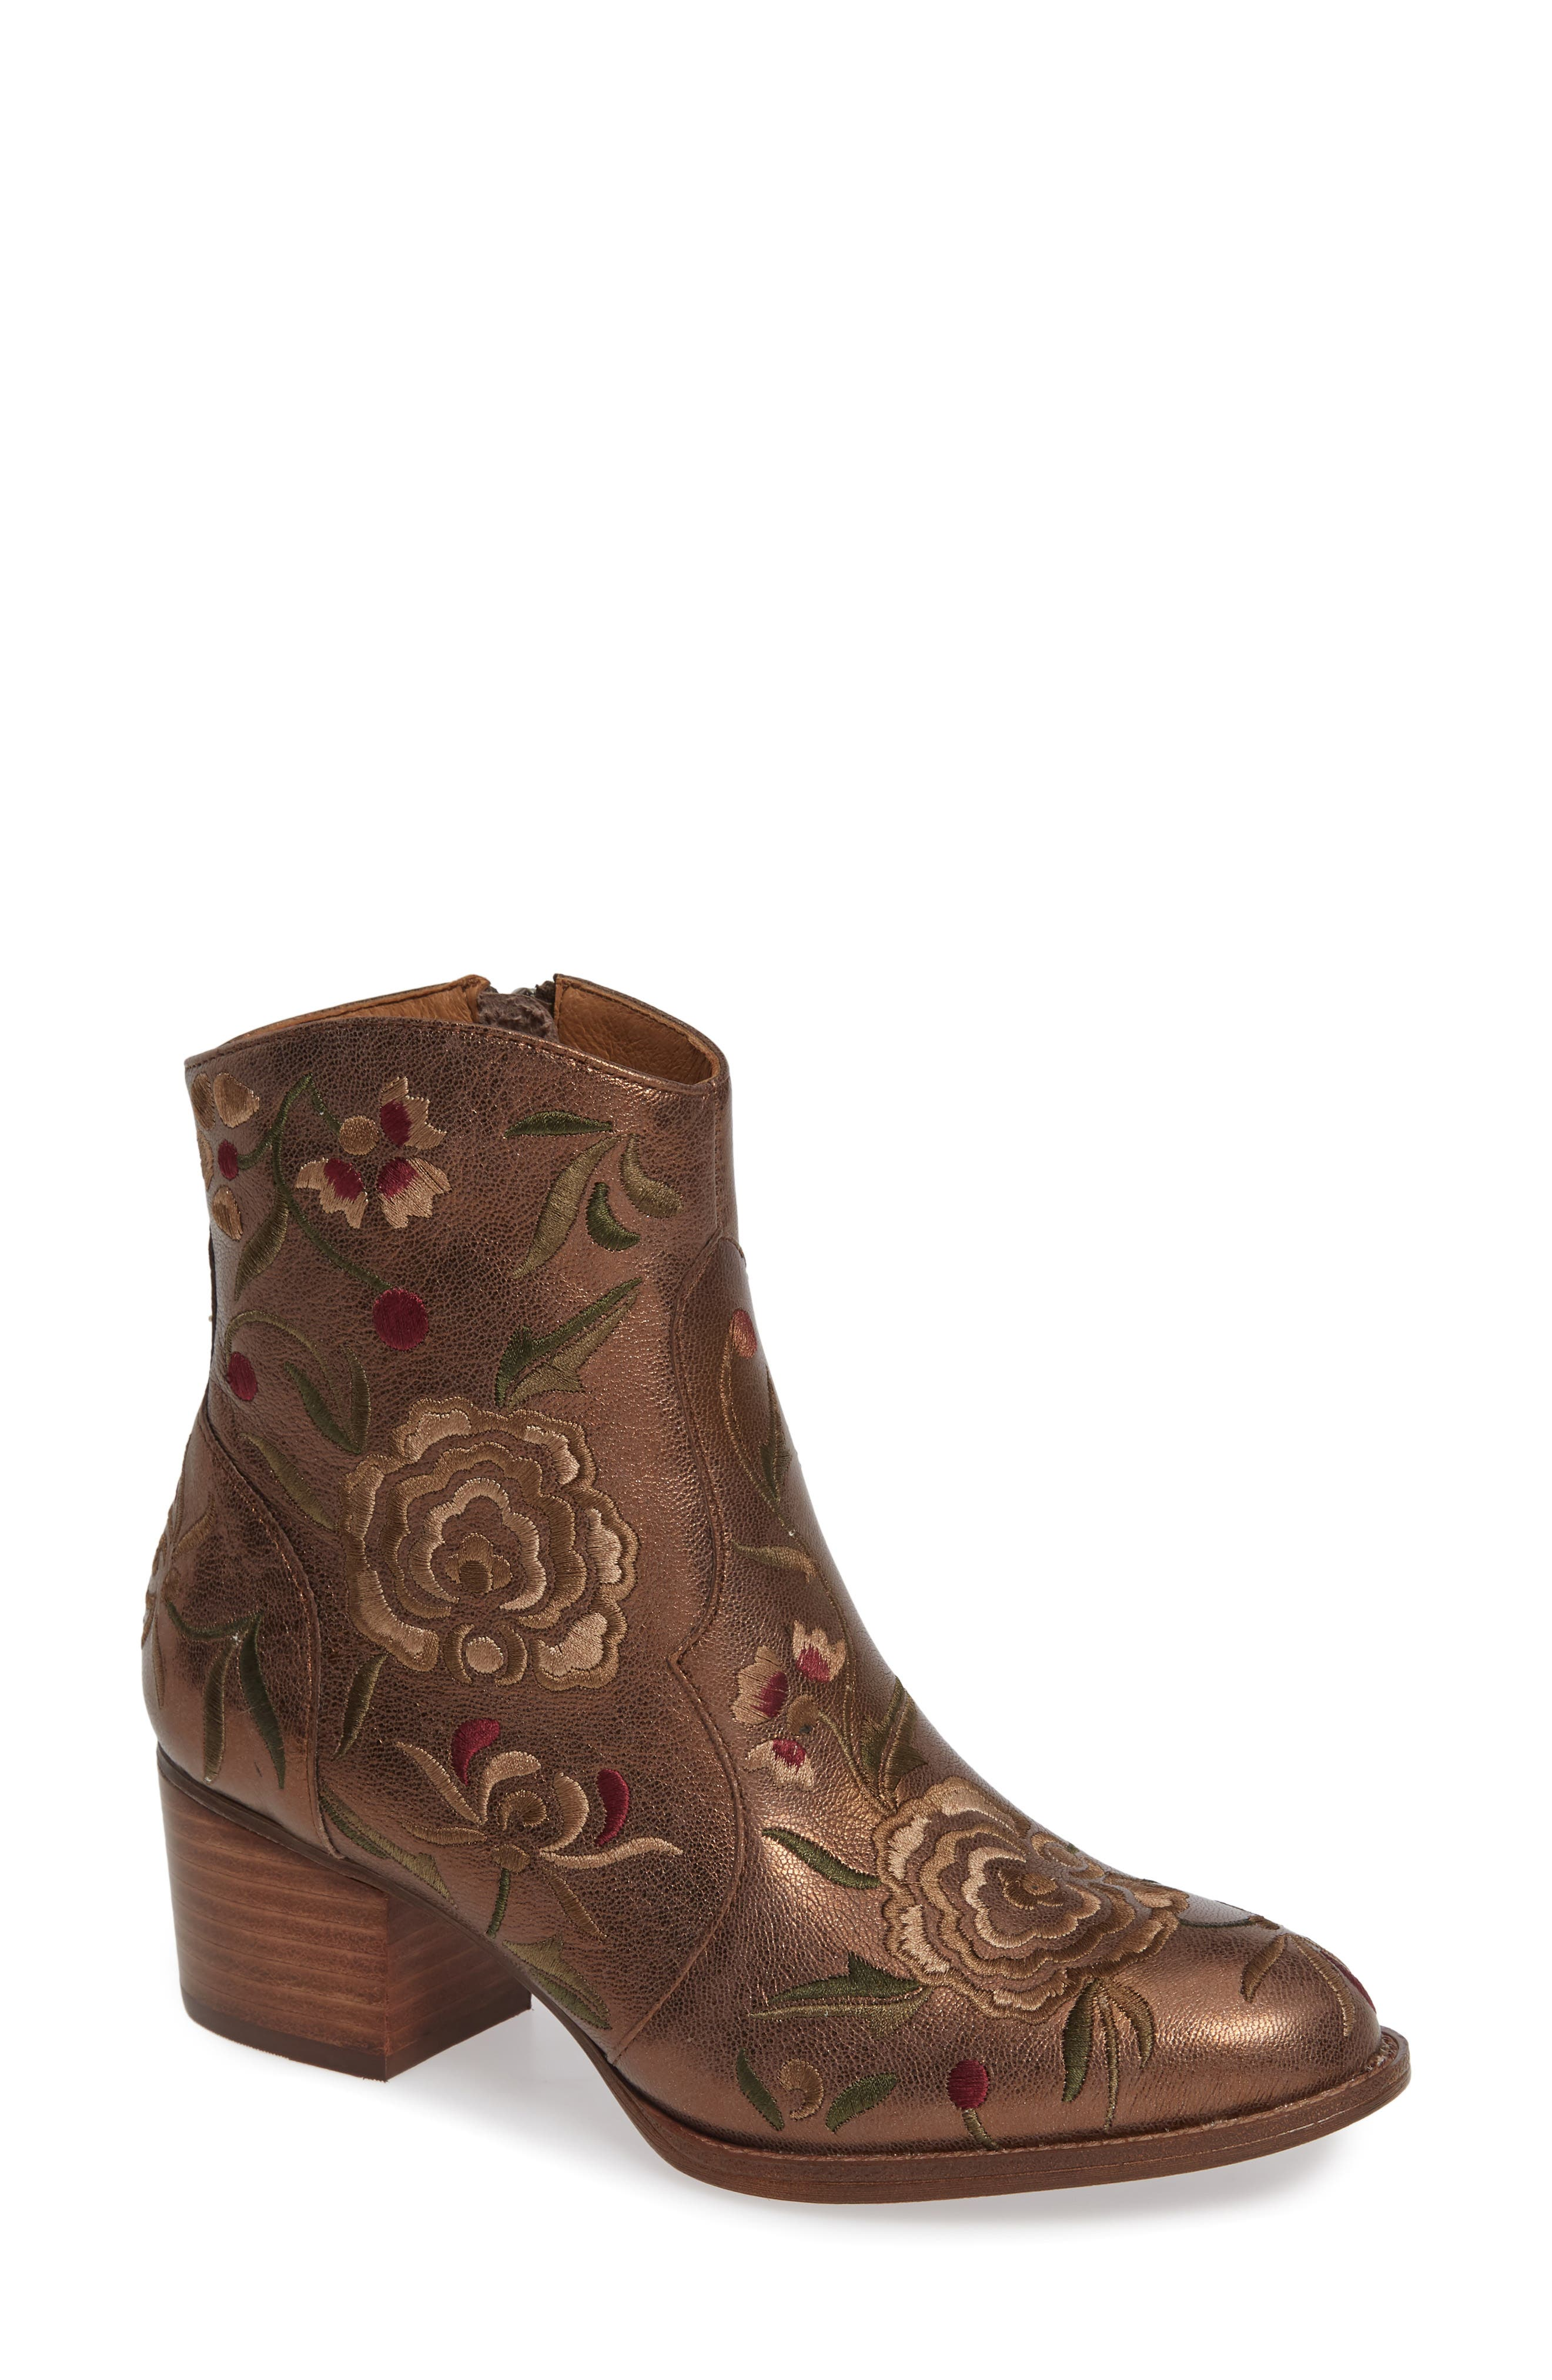 Sofft Westmont Floral Embroidered Bootie- Metallic